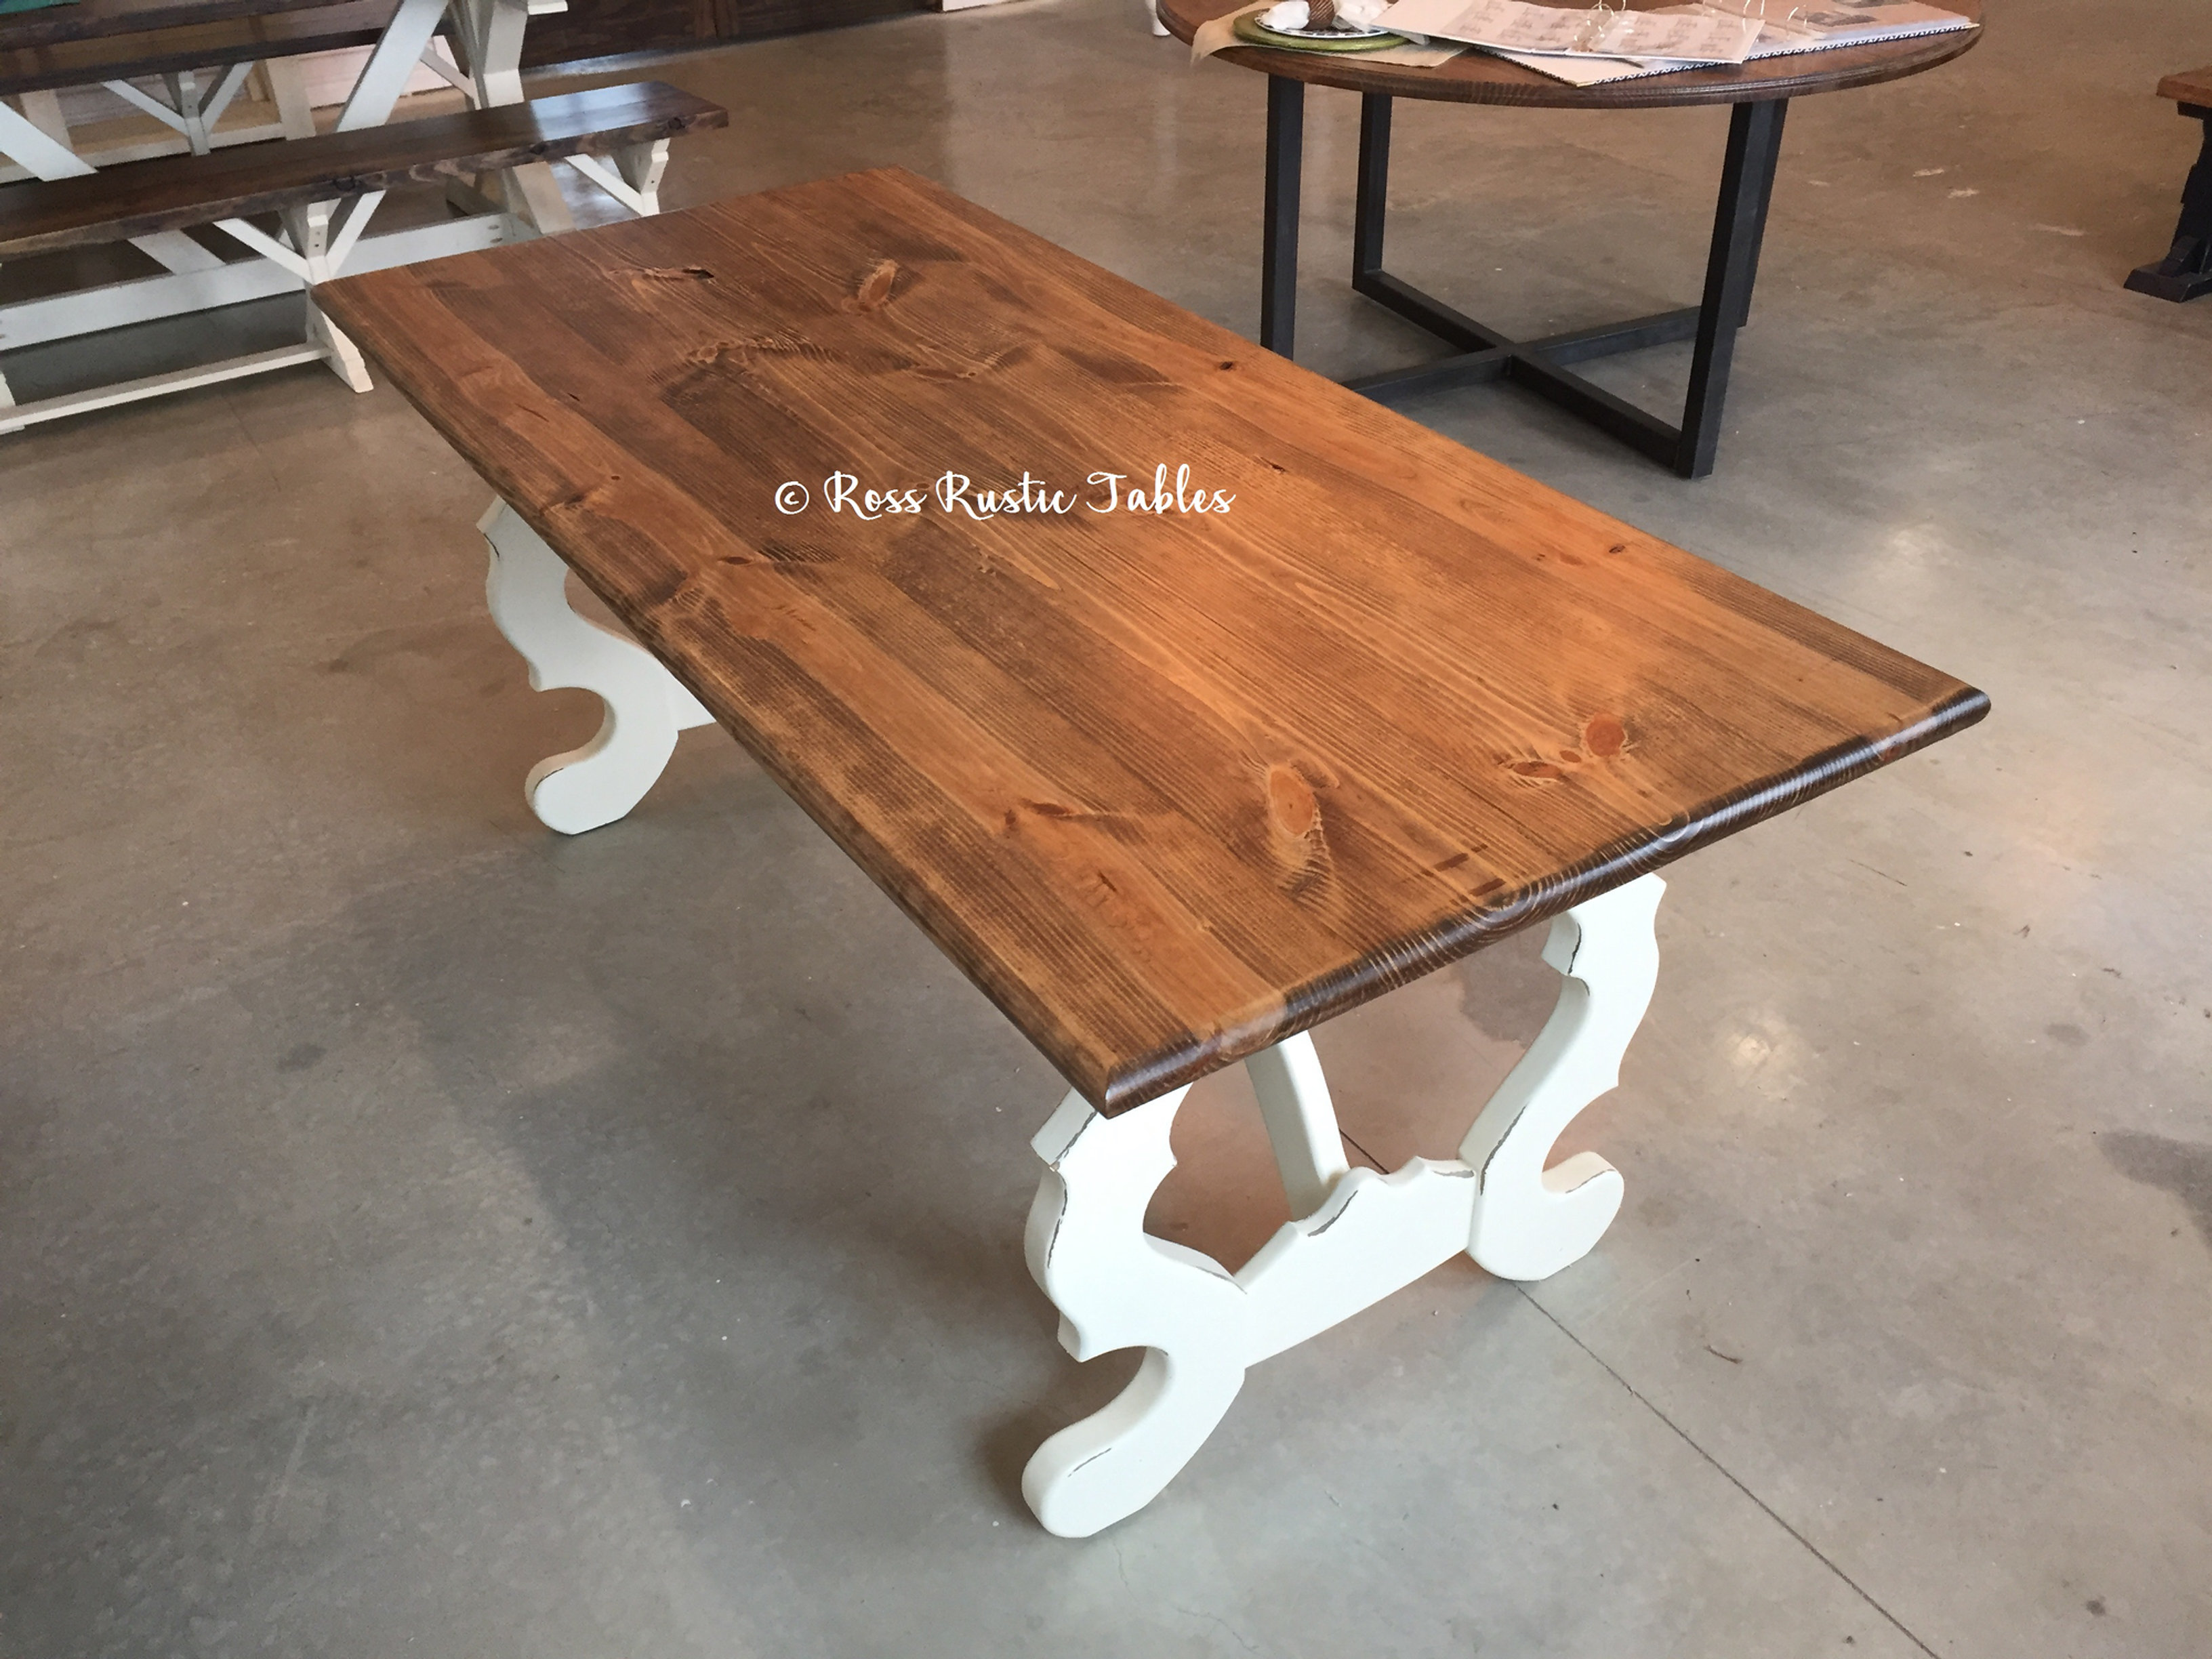 This Beautiful Solid Wood French Country Table Is The Perfect Addition To  Any Home! At Ross Rustic Tables We Hand Make Every Single Piece Of Furniture .